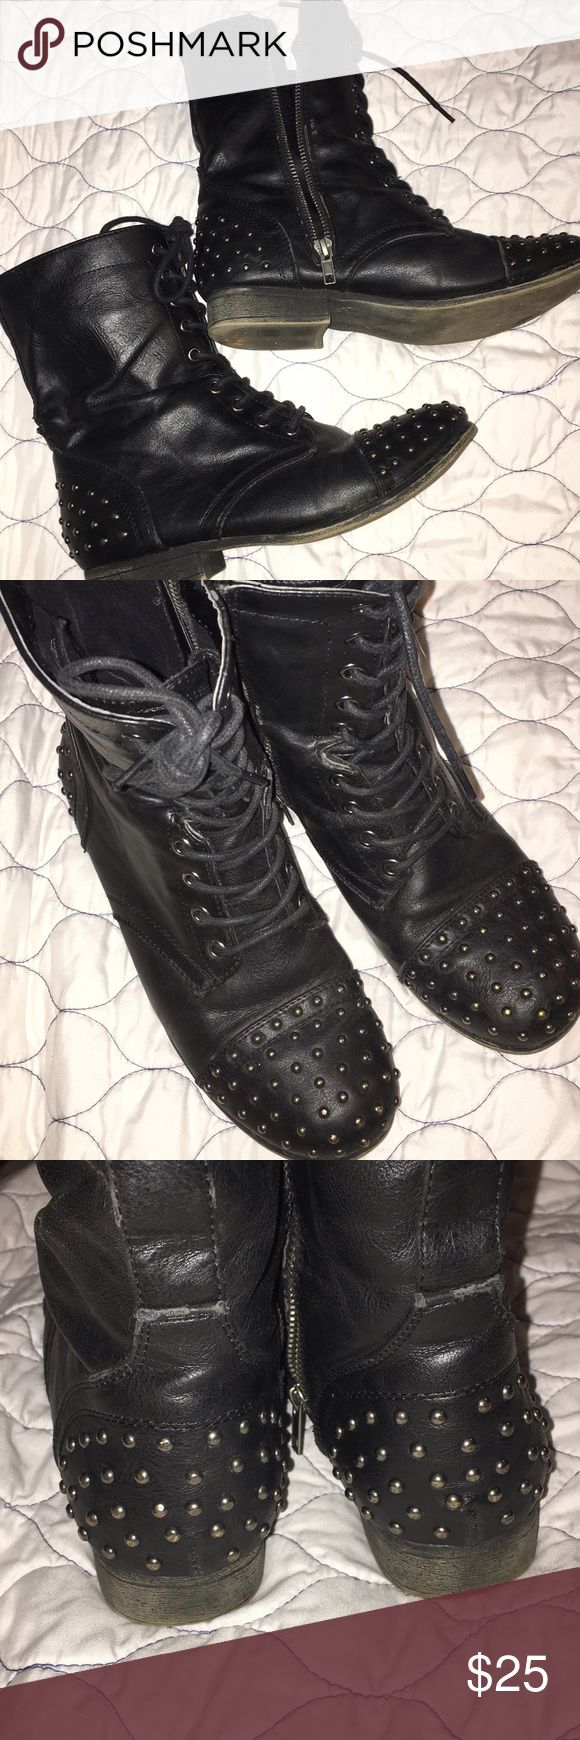 Madden Girl Black Studded Combat Boots Madden Girl studded black combat boots, leather has been slightly worn however no rips or tears, all studs are still on the boot, from a smoke free household! Madden Girl Shoes Combat & Moto Boots